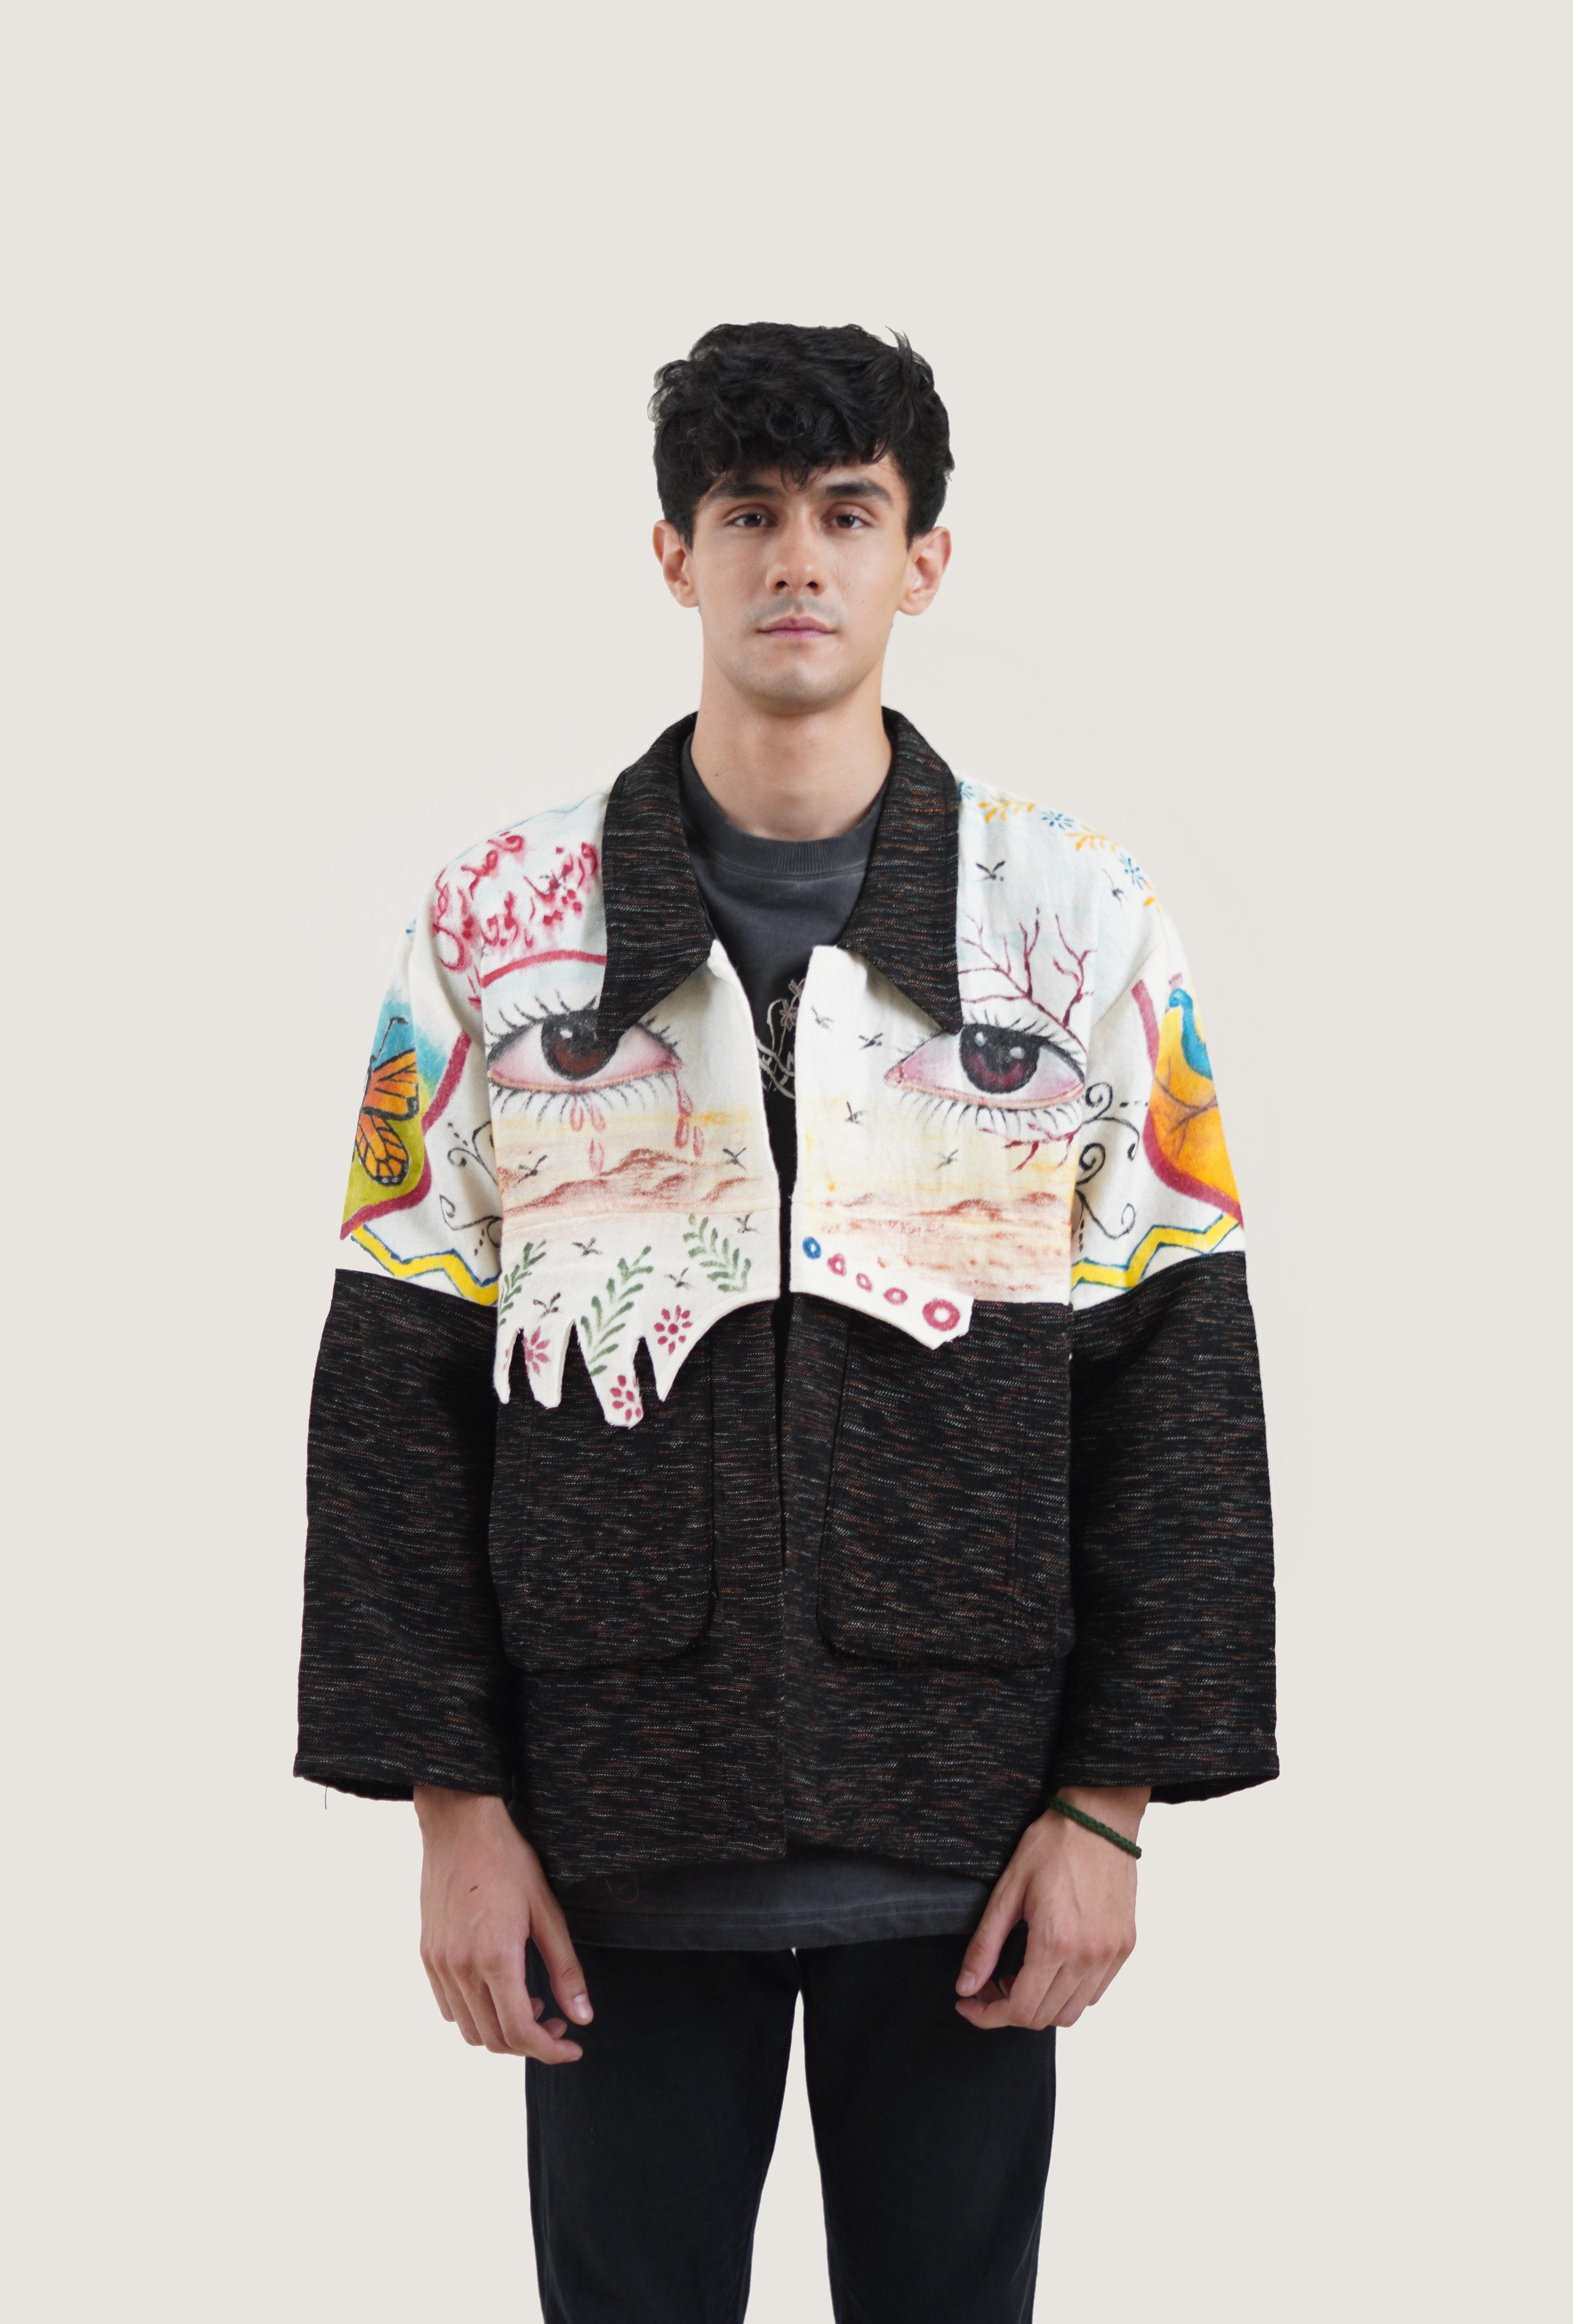 Dystopian Painted Dhaaba Jacket